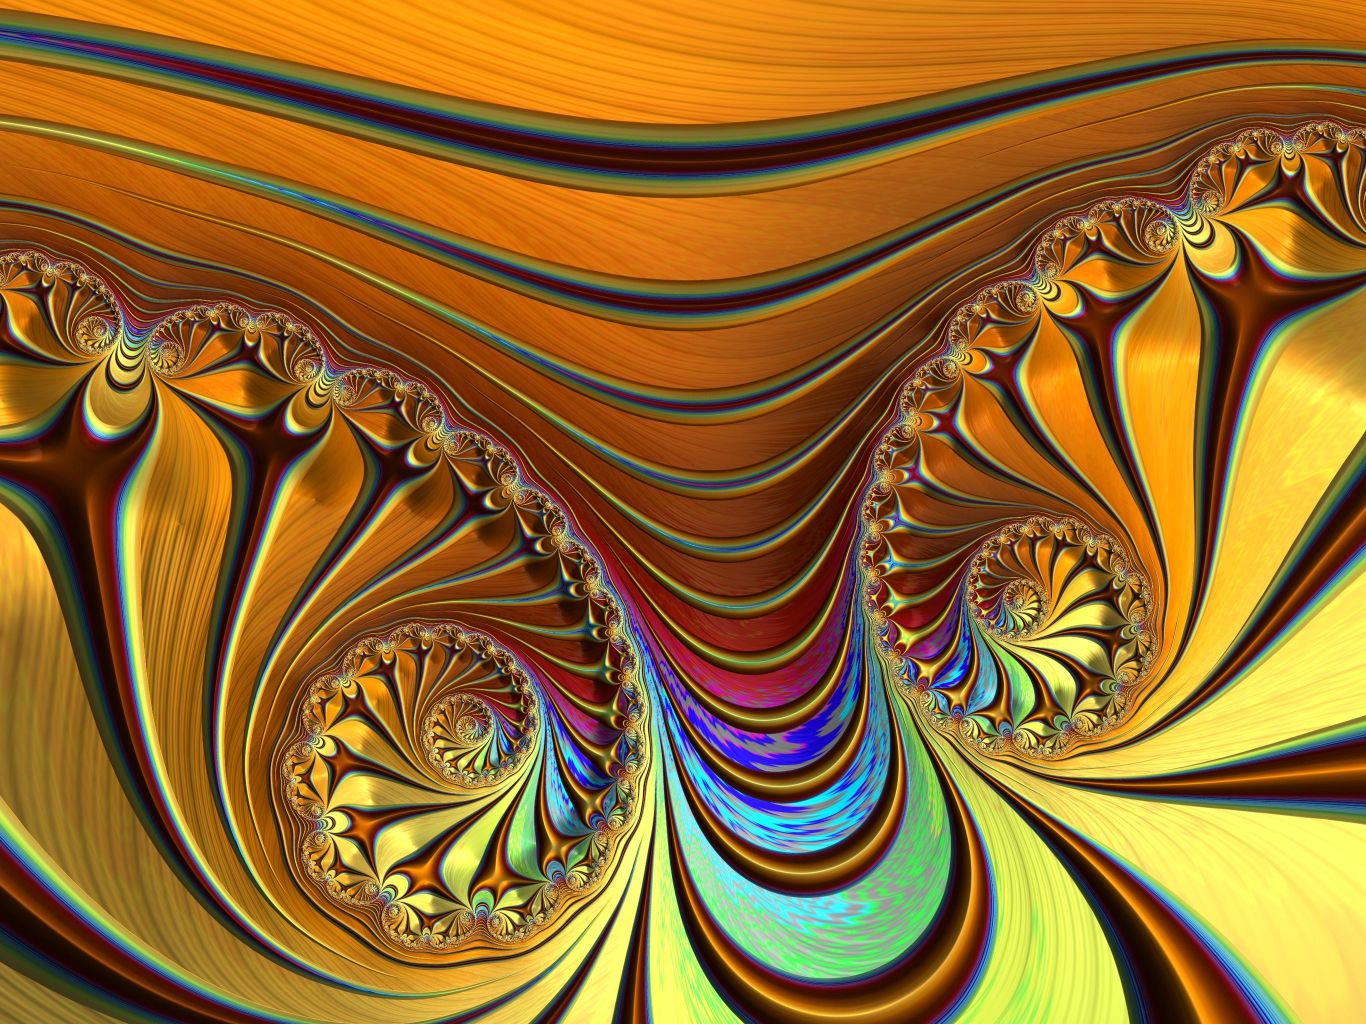 fractal image by abstractxpressionist